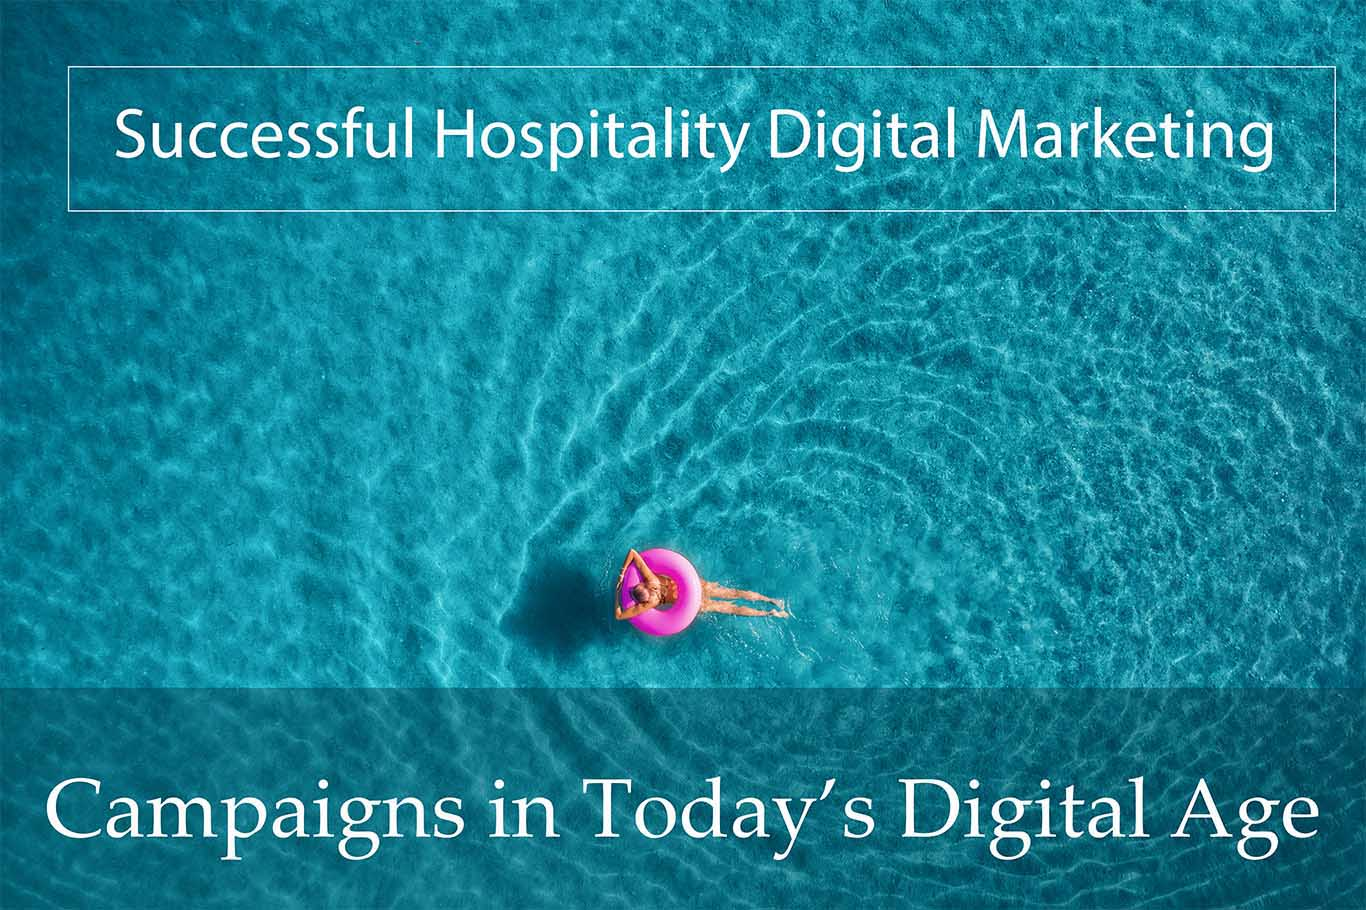 Successful Hospitality Digital Marketing Campaigns in Today's Digital Age